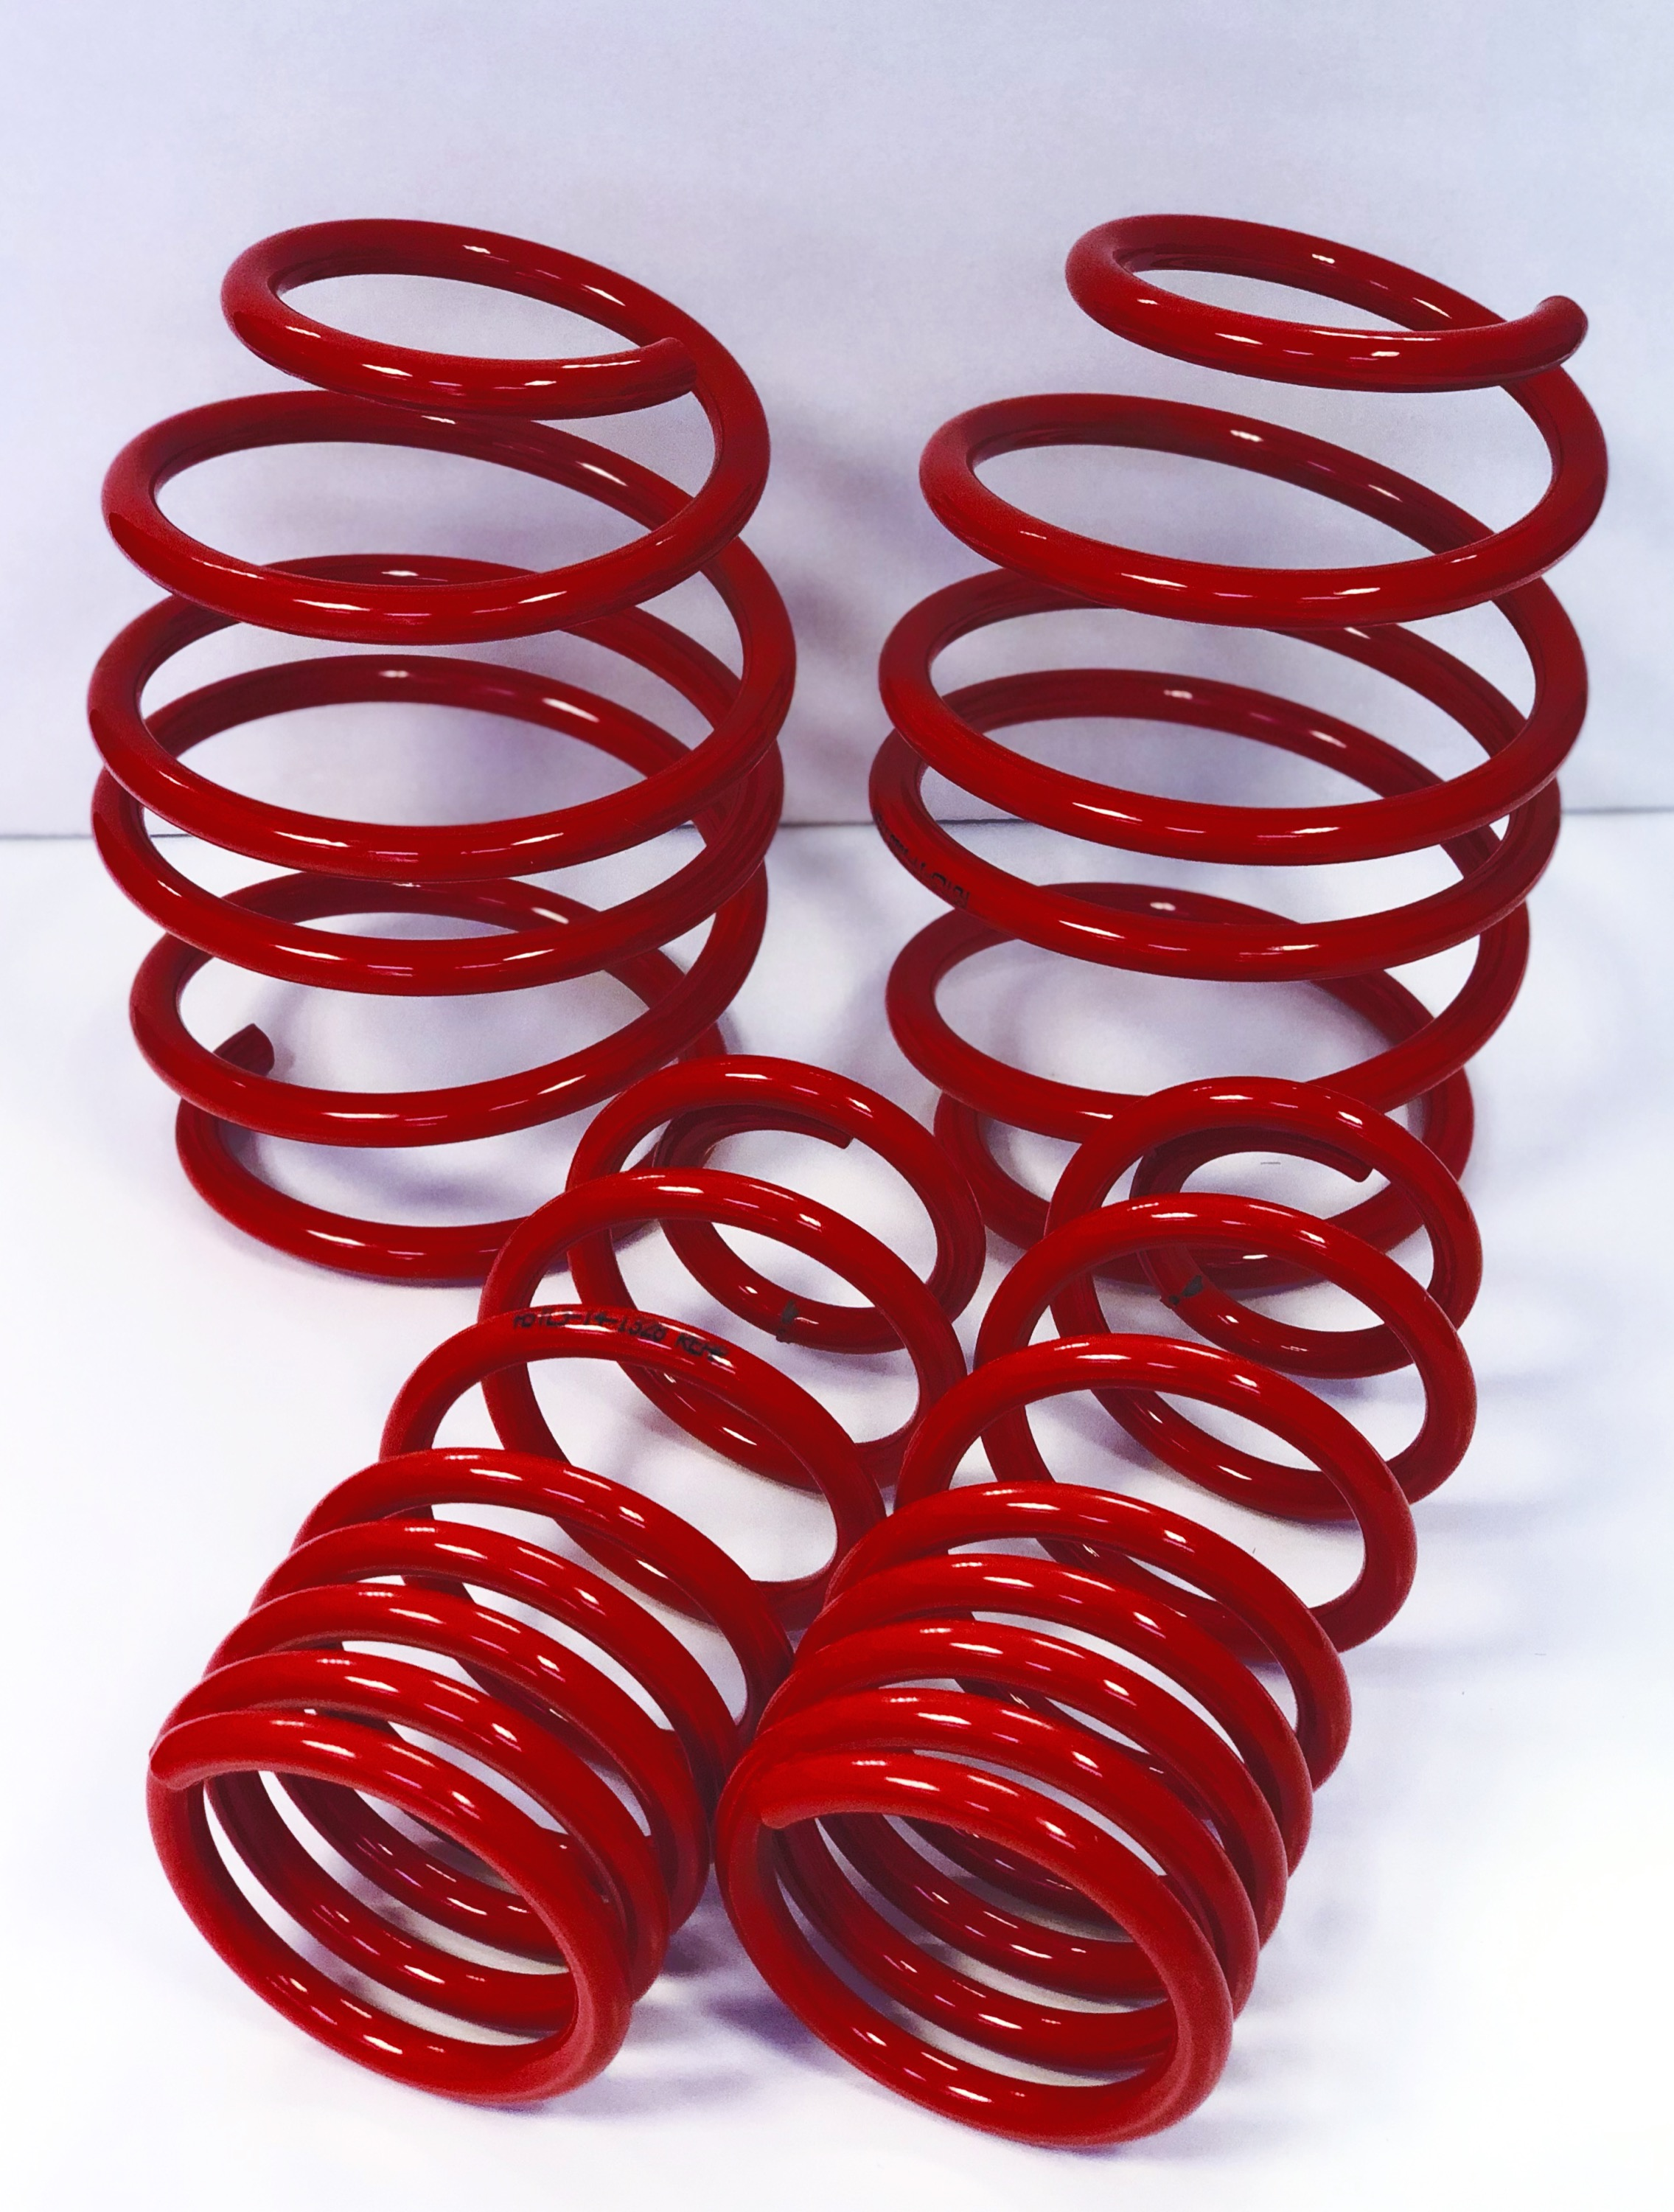 Renault LAGUNA AST Suspension Lowering Springs 30MM